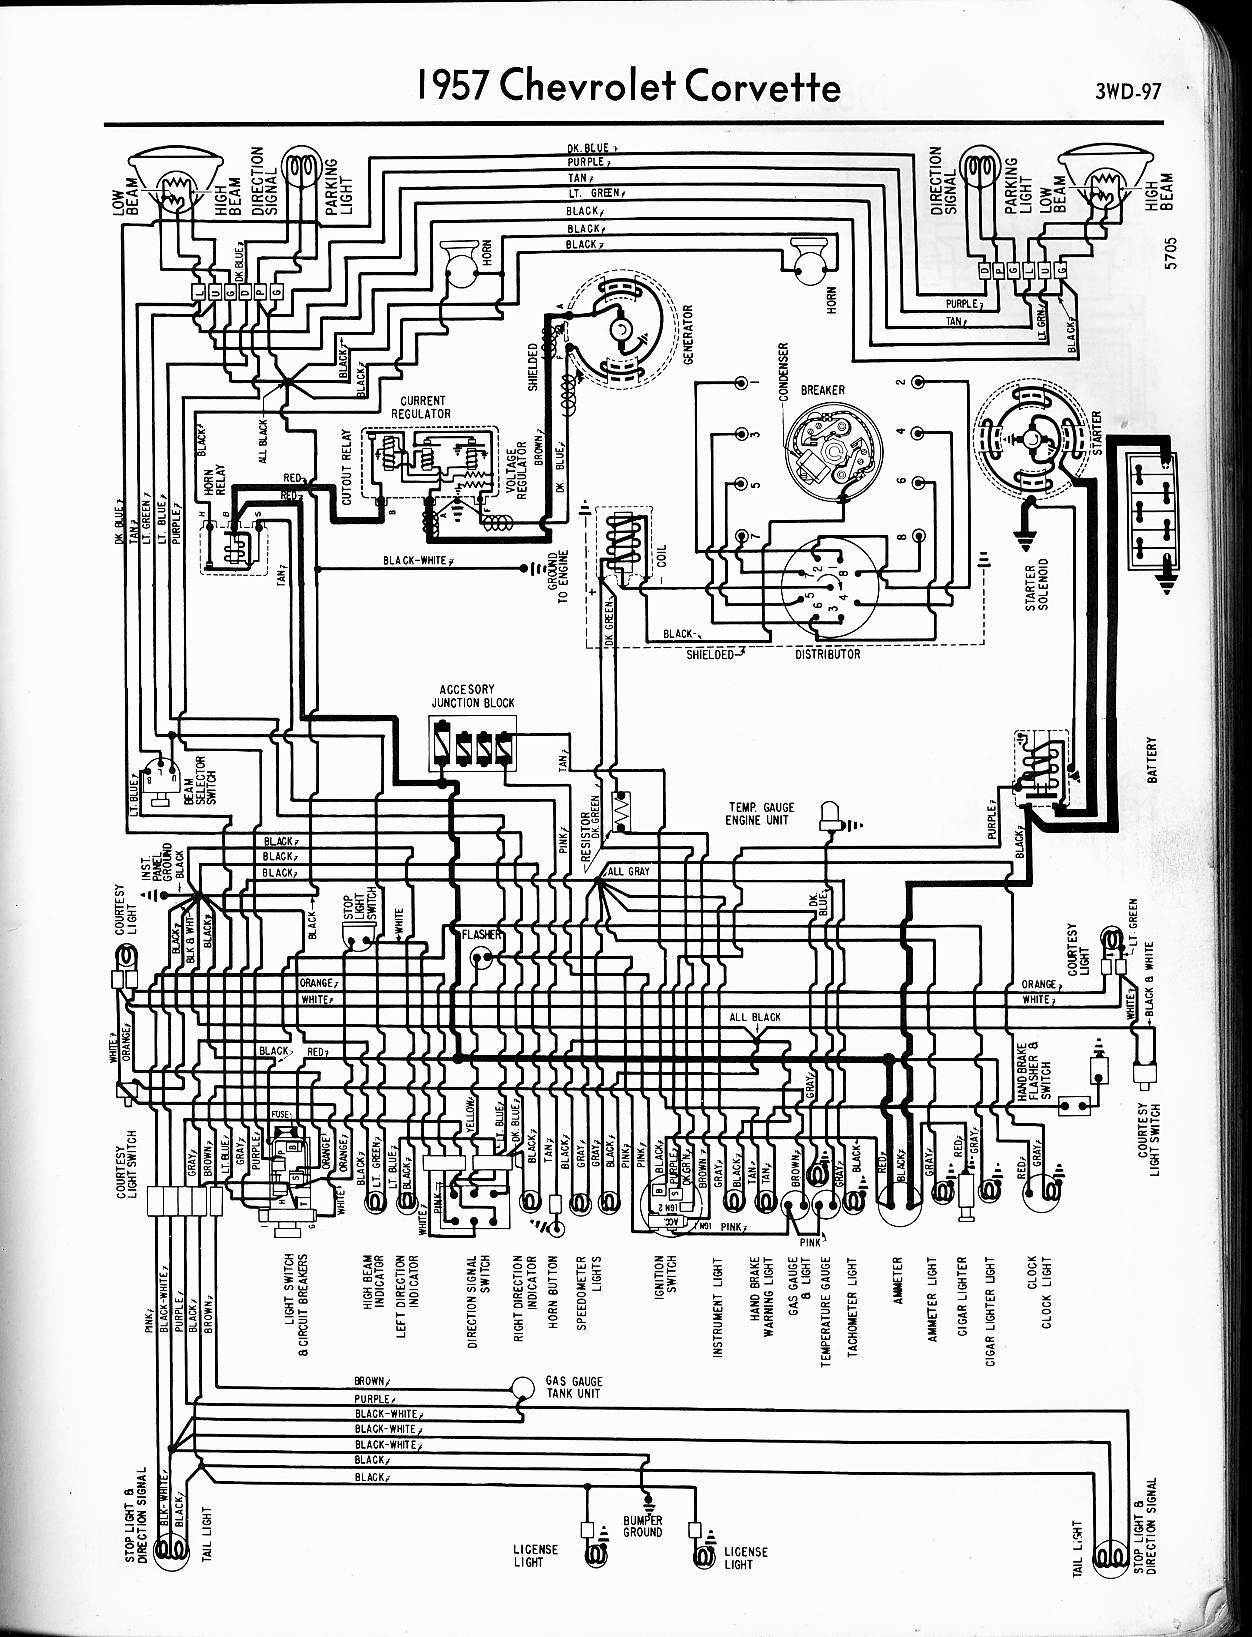 MWireChev57_3WD 097 57 65 chevy wiring diagrams 65 chevy wiring harness at suagrazia.org